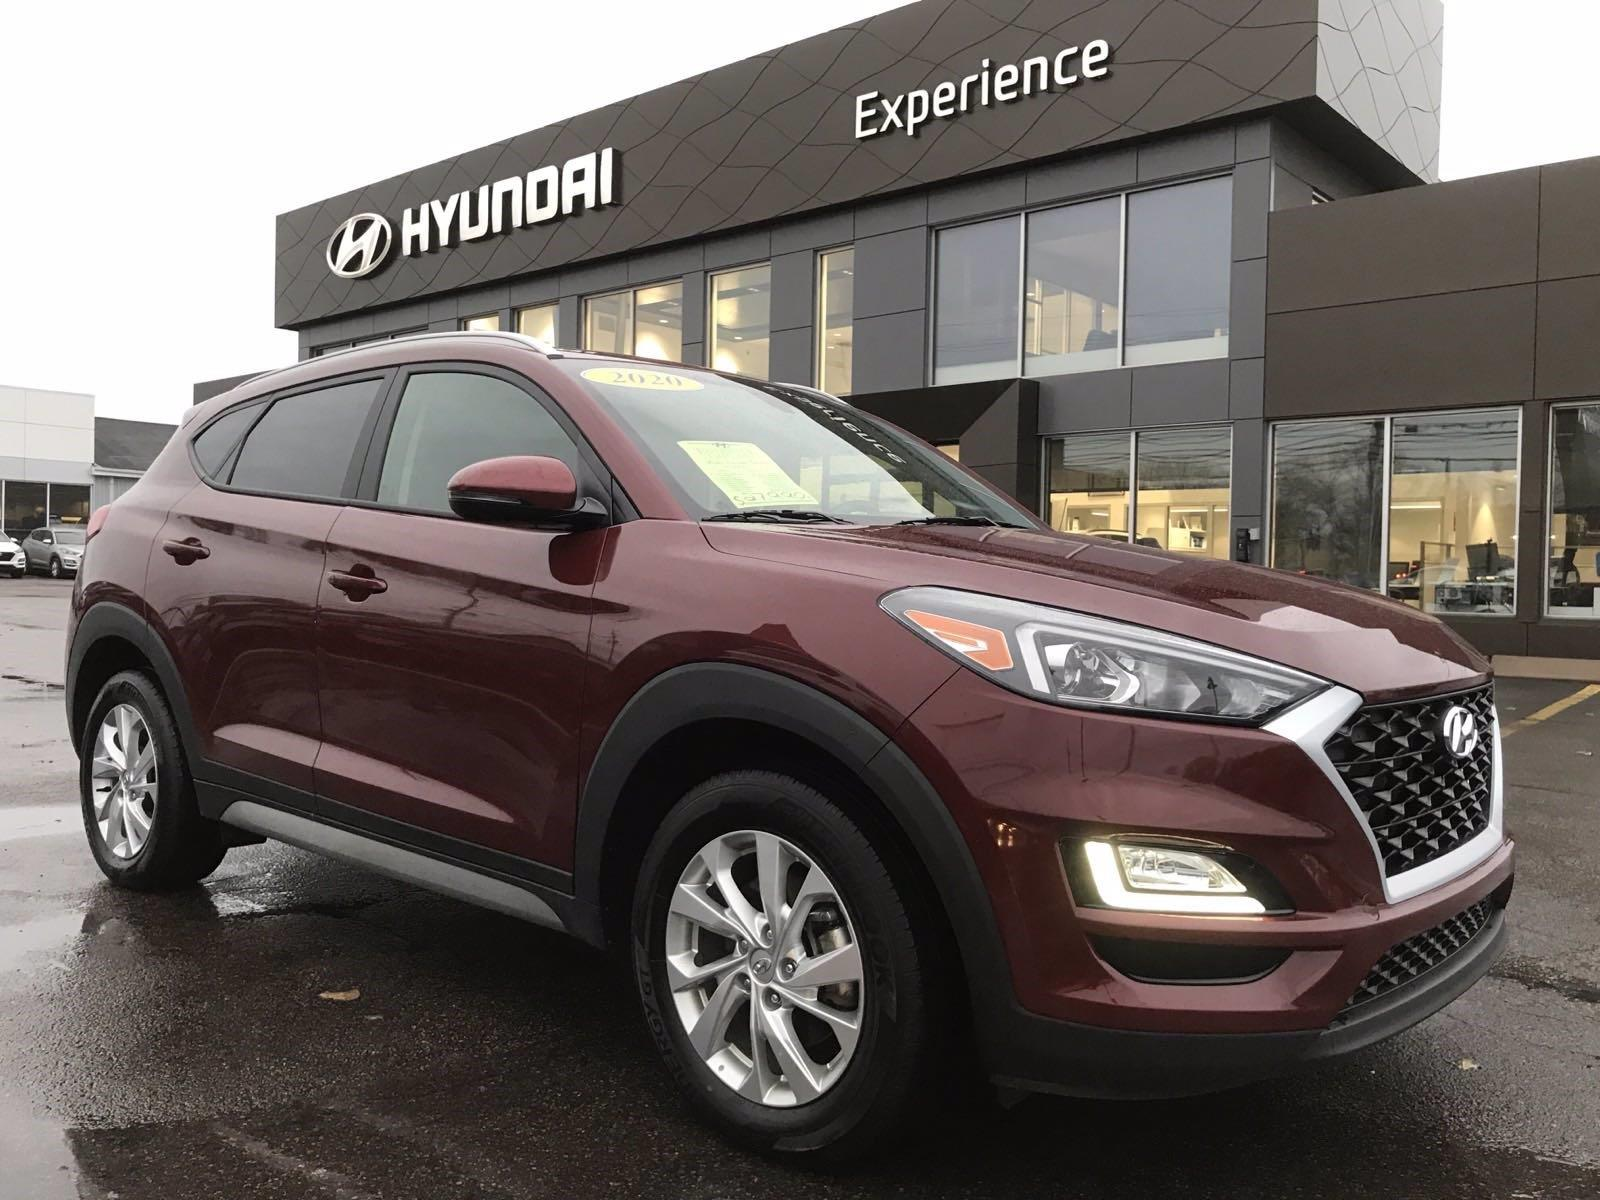 2020 Hyundai Tucson Preferred - 20,183km